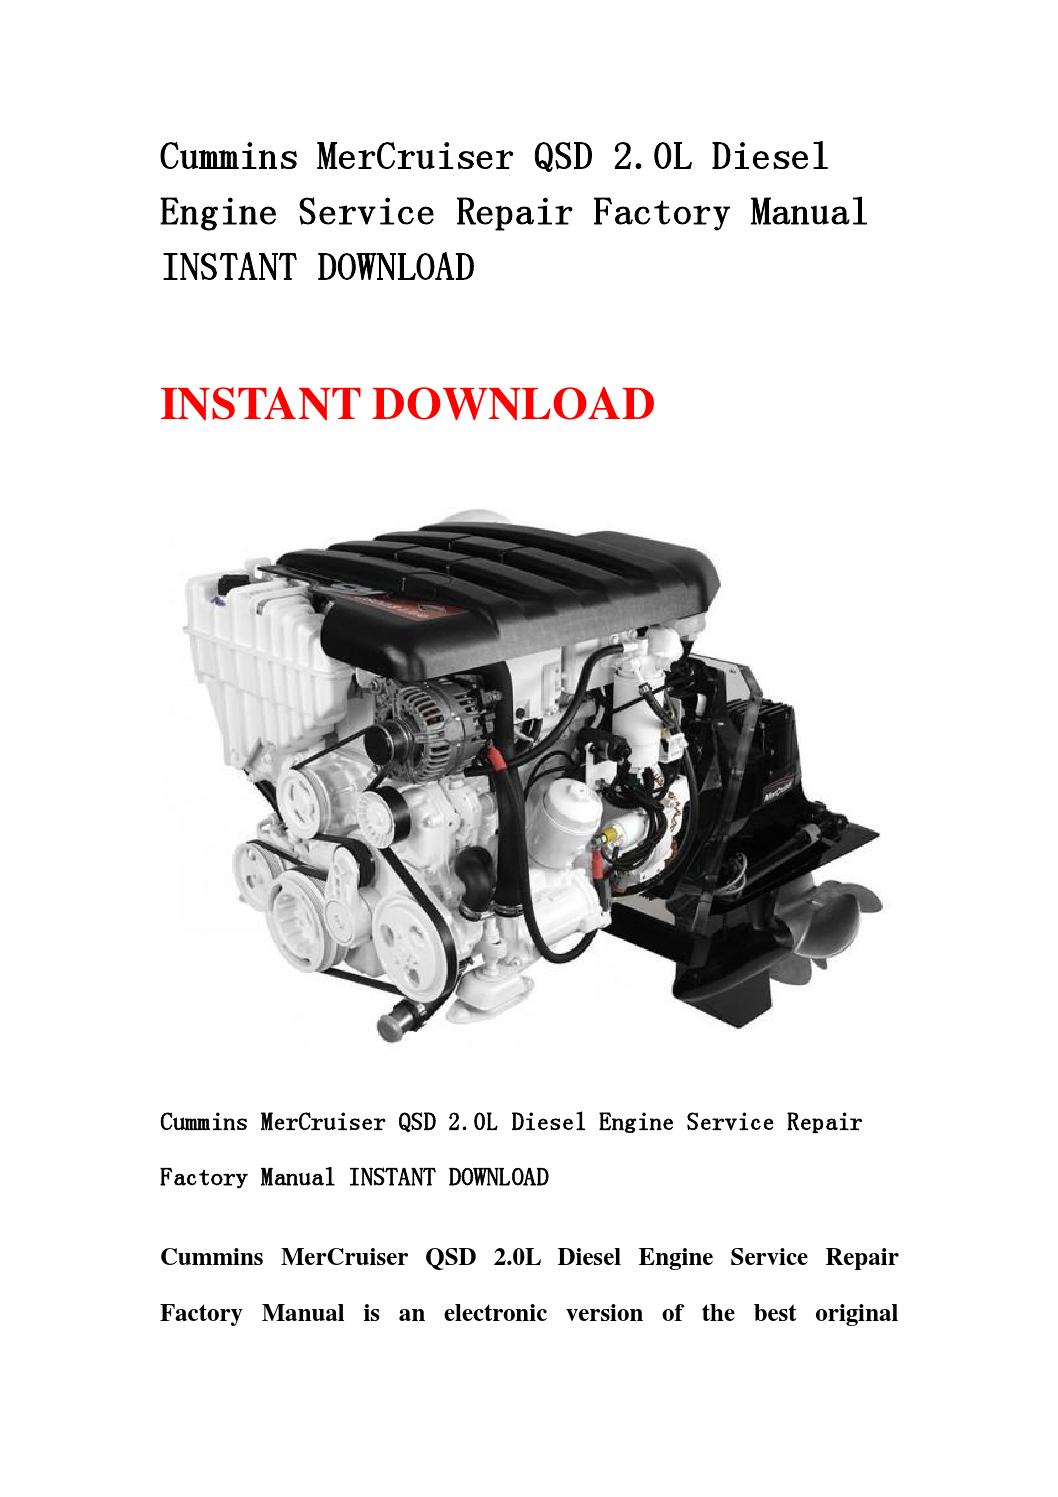 Cummins mercruiser qsd 2 0l diesel engine service repair factory manual  instant download by hgsbehn - issuu